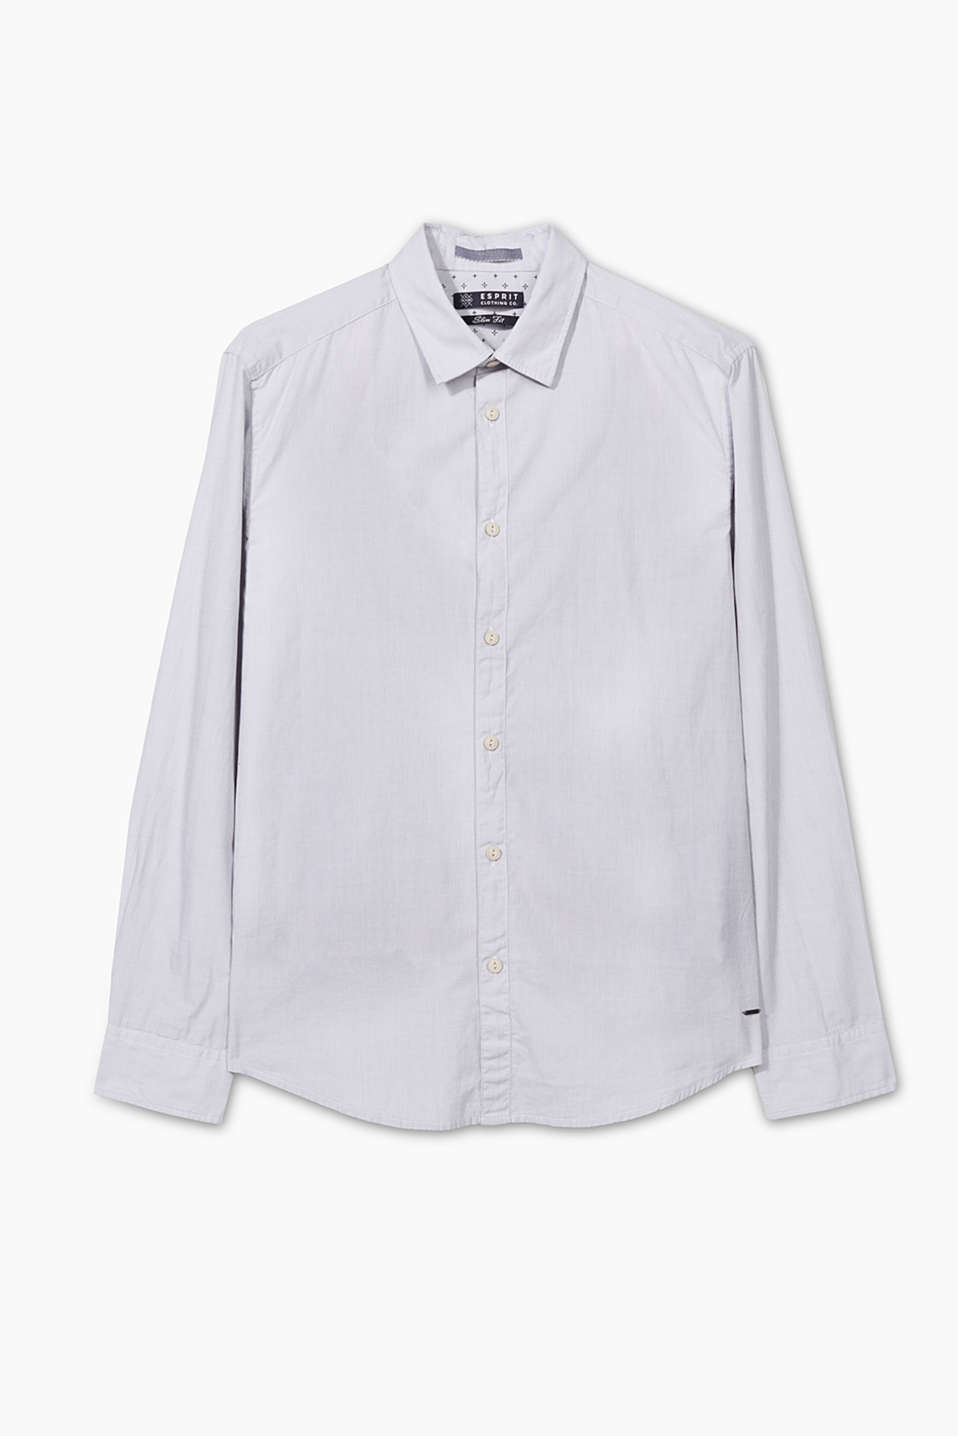 Soft cotton shirt with a garment washed effect